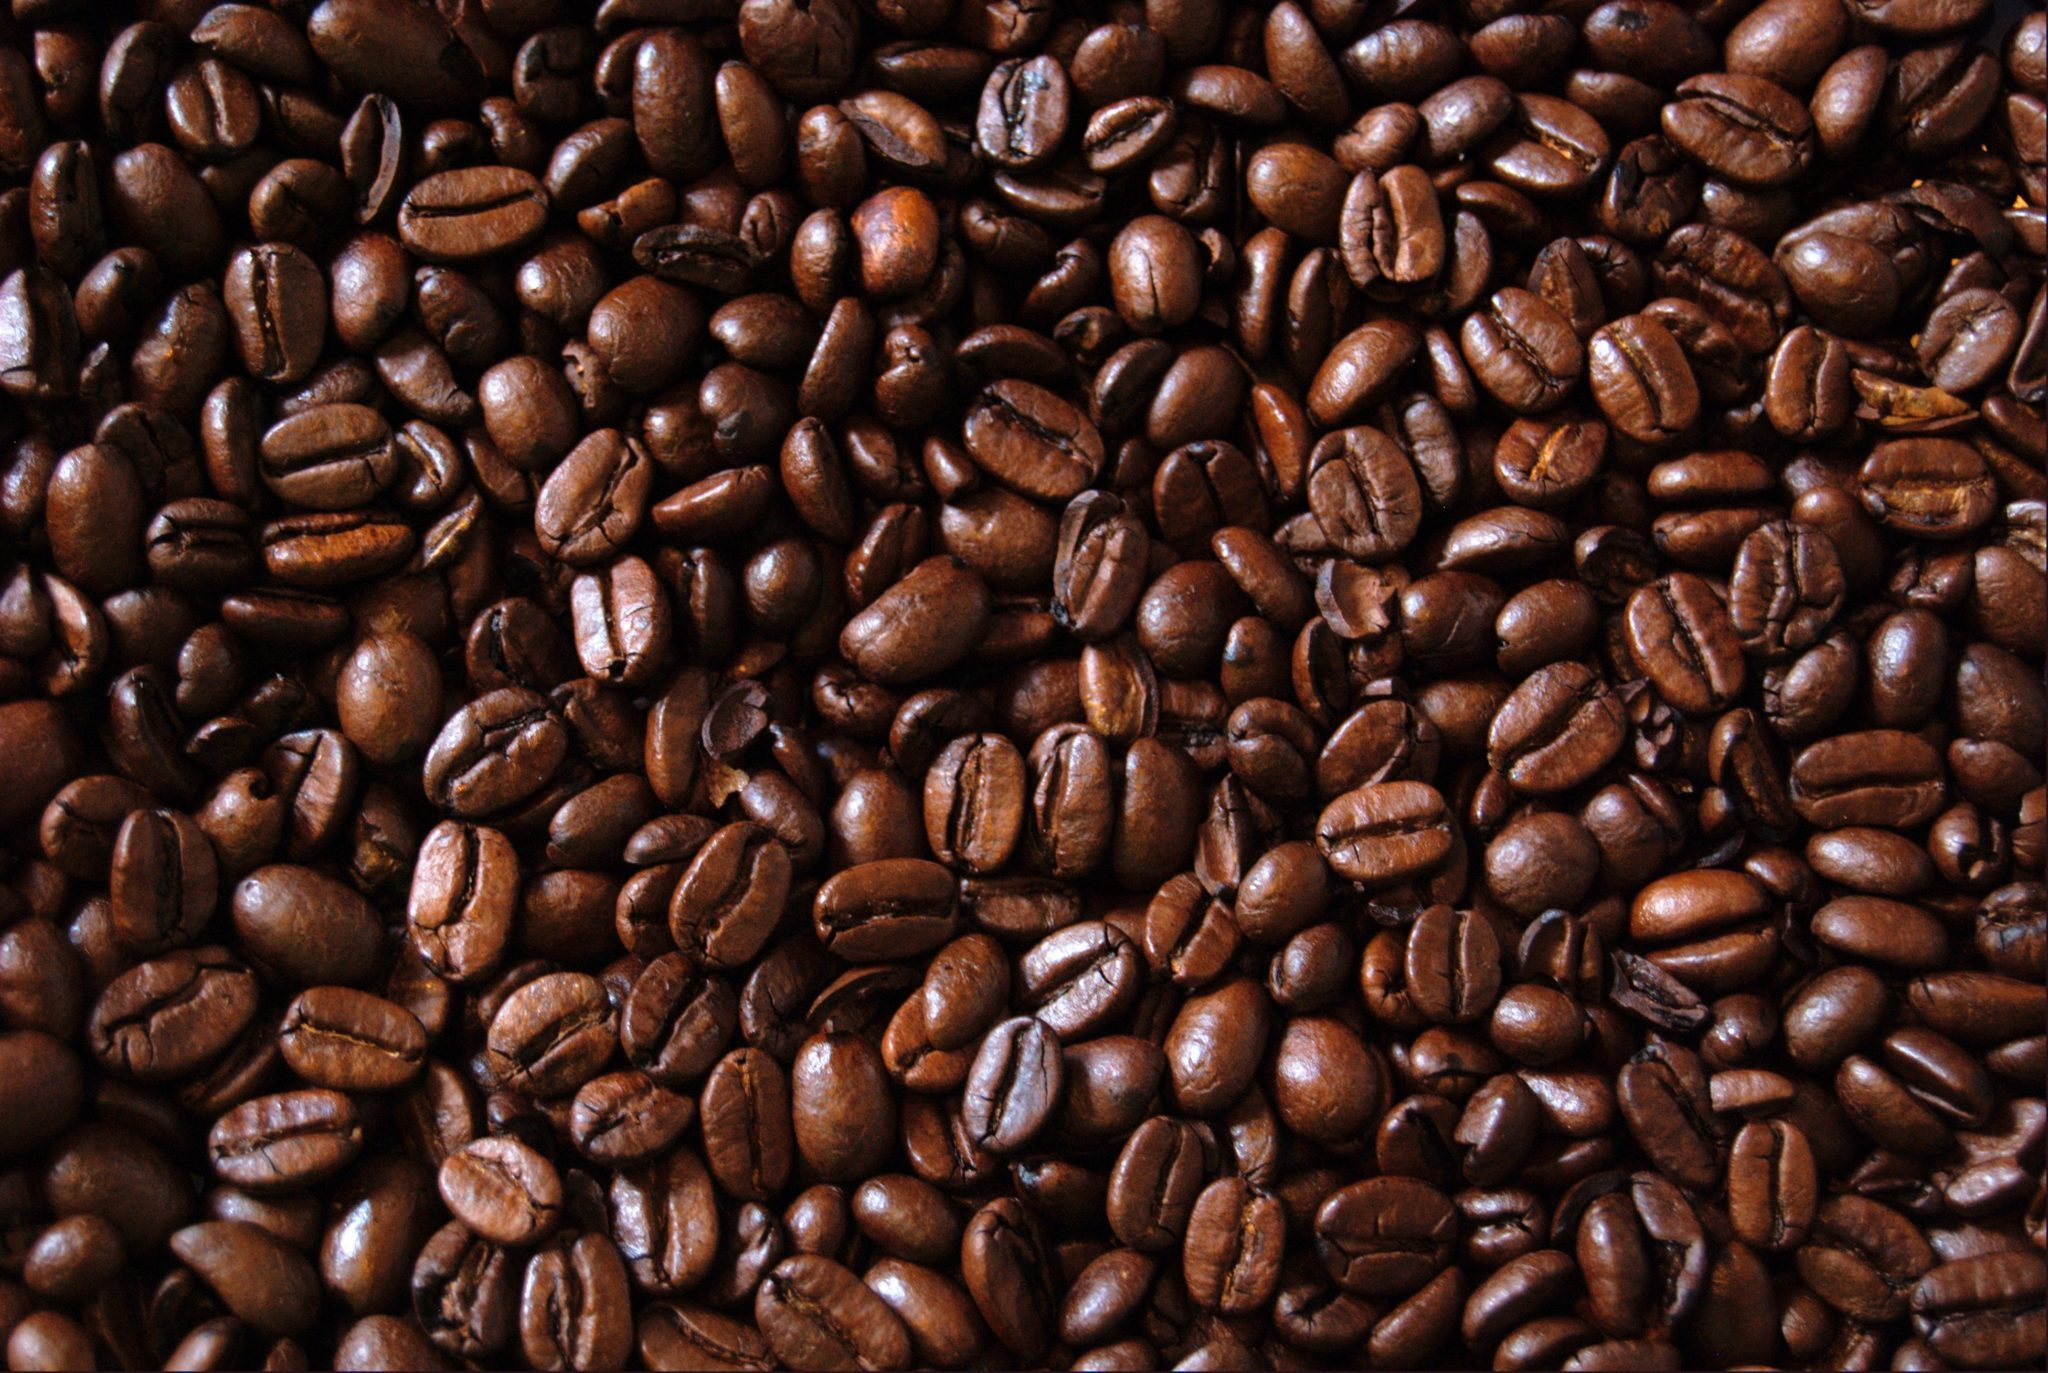 Chewing coffee beans is good for your mouth, here's how - Cookbook